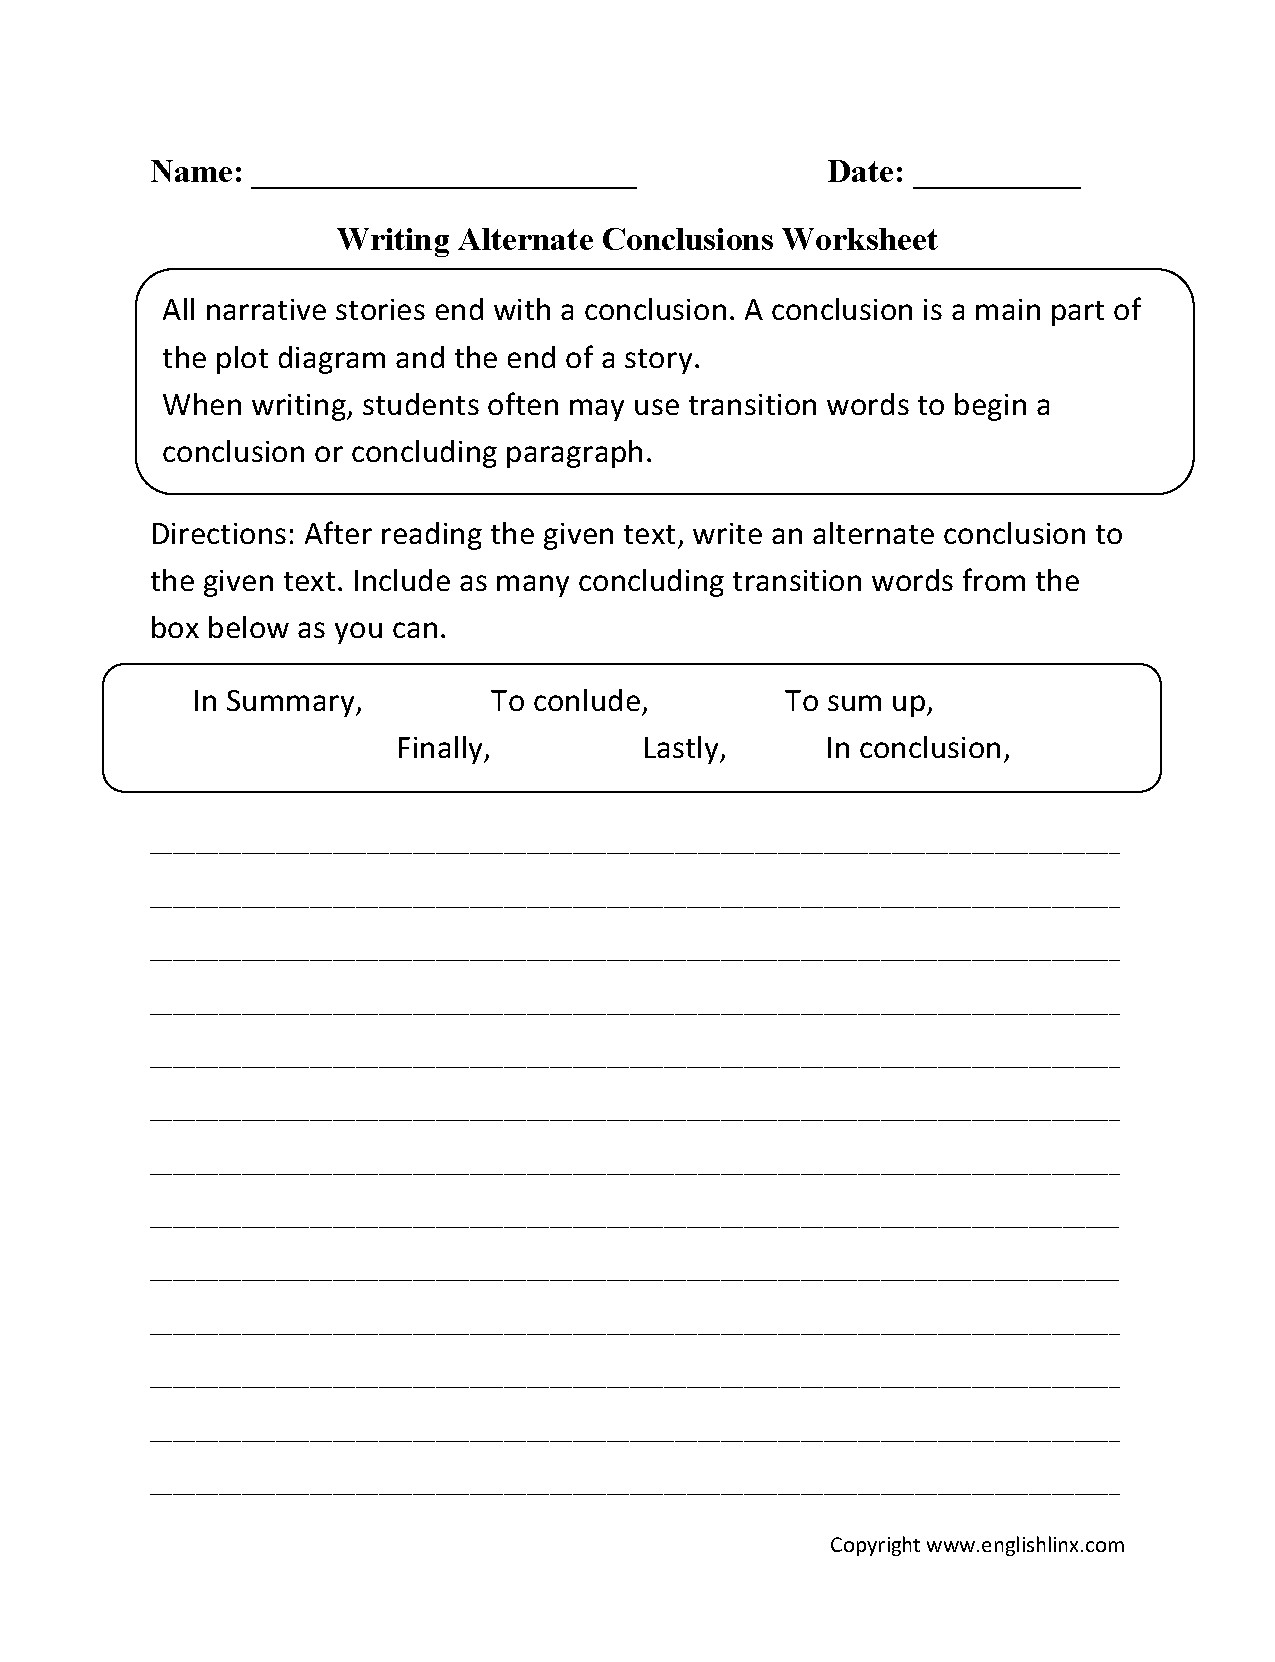 027 Englishlinx Writing Conclusions Worksheets Pertaining To Conclusion Paragraph Examples 5th Grade Research Impressive High School 4th A Full